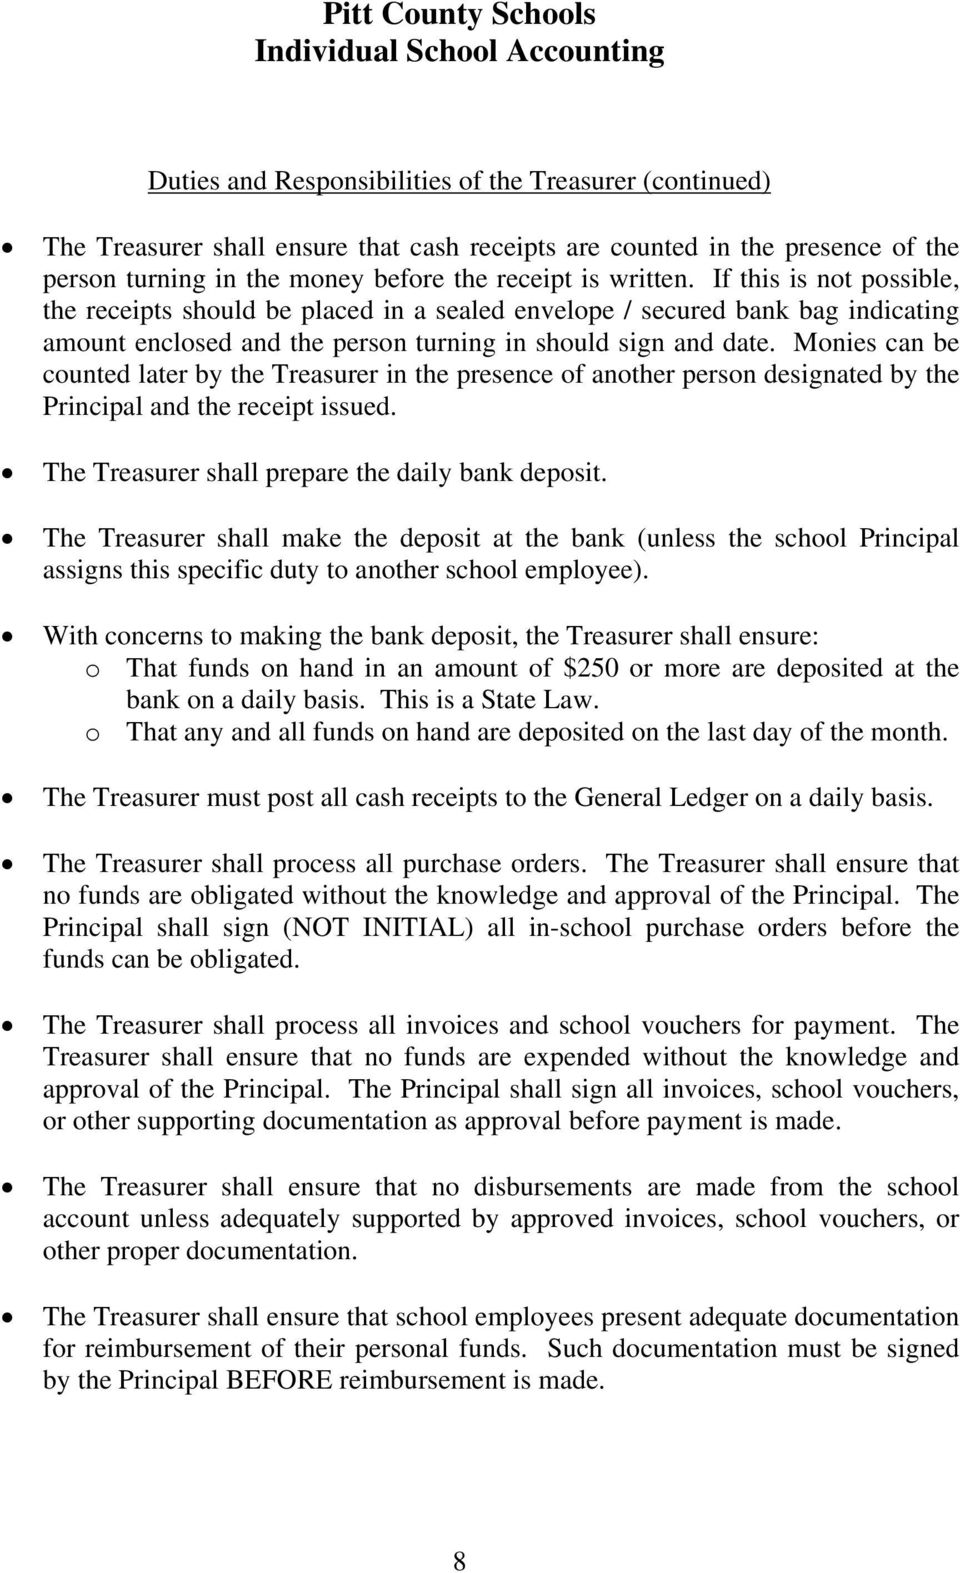 Monies can be counted later by the Treasurer in the presence of another person designated by the Principal and the receipt issued. The Treasurer shall prepare the daily bank deposit.